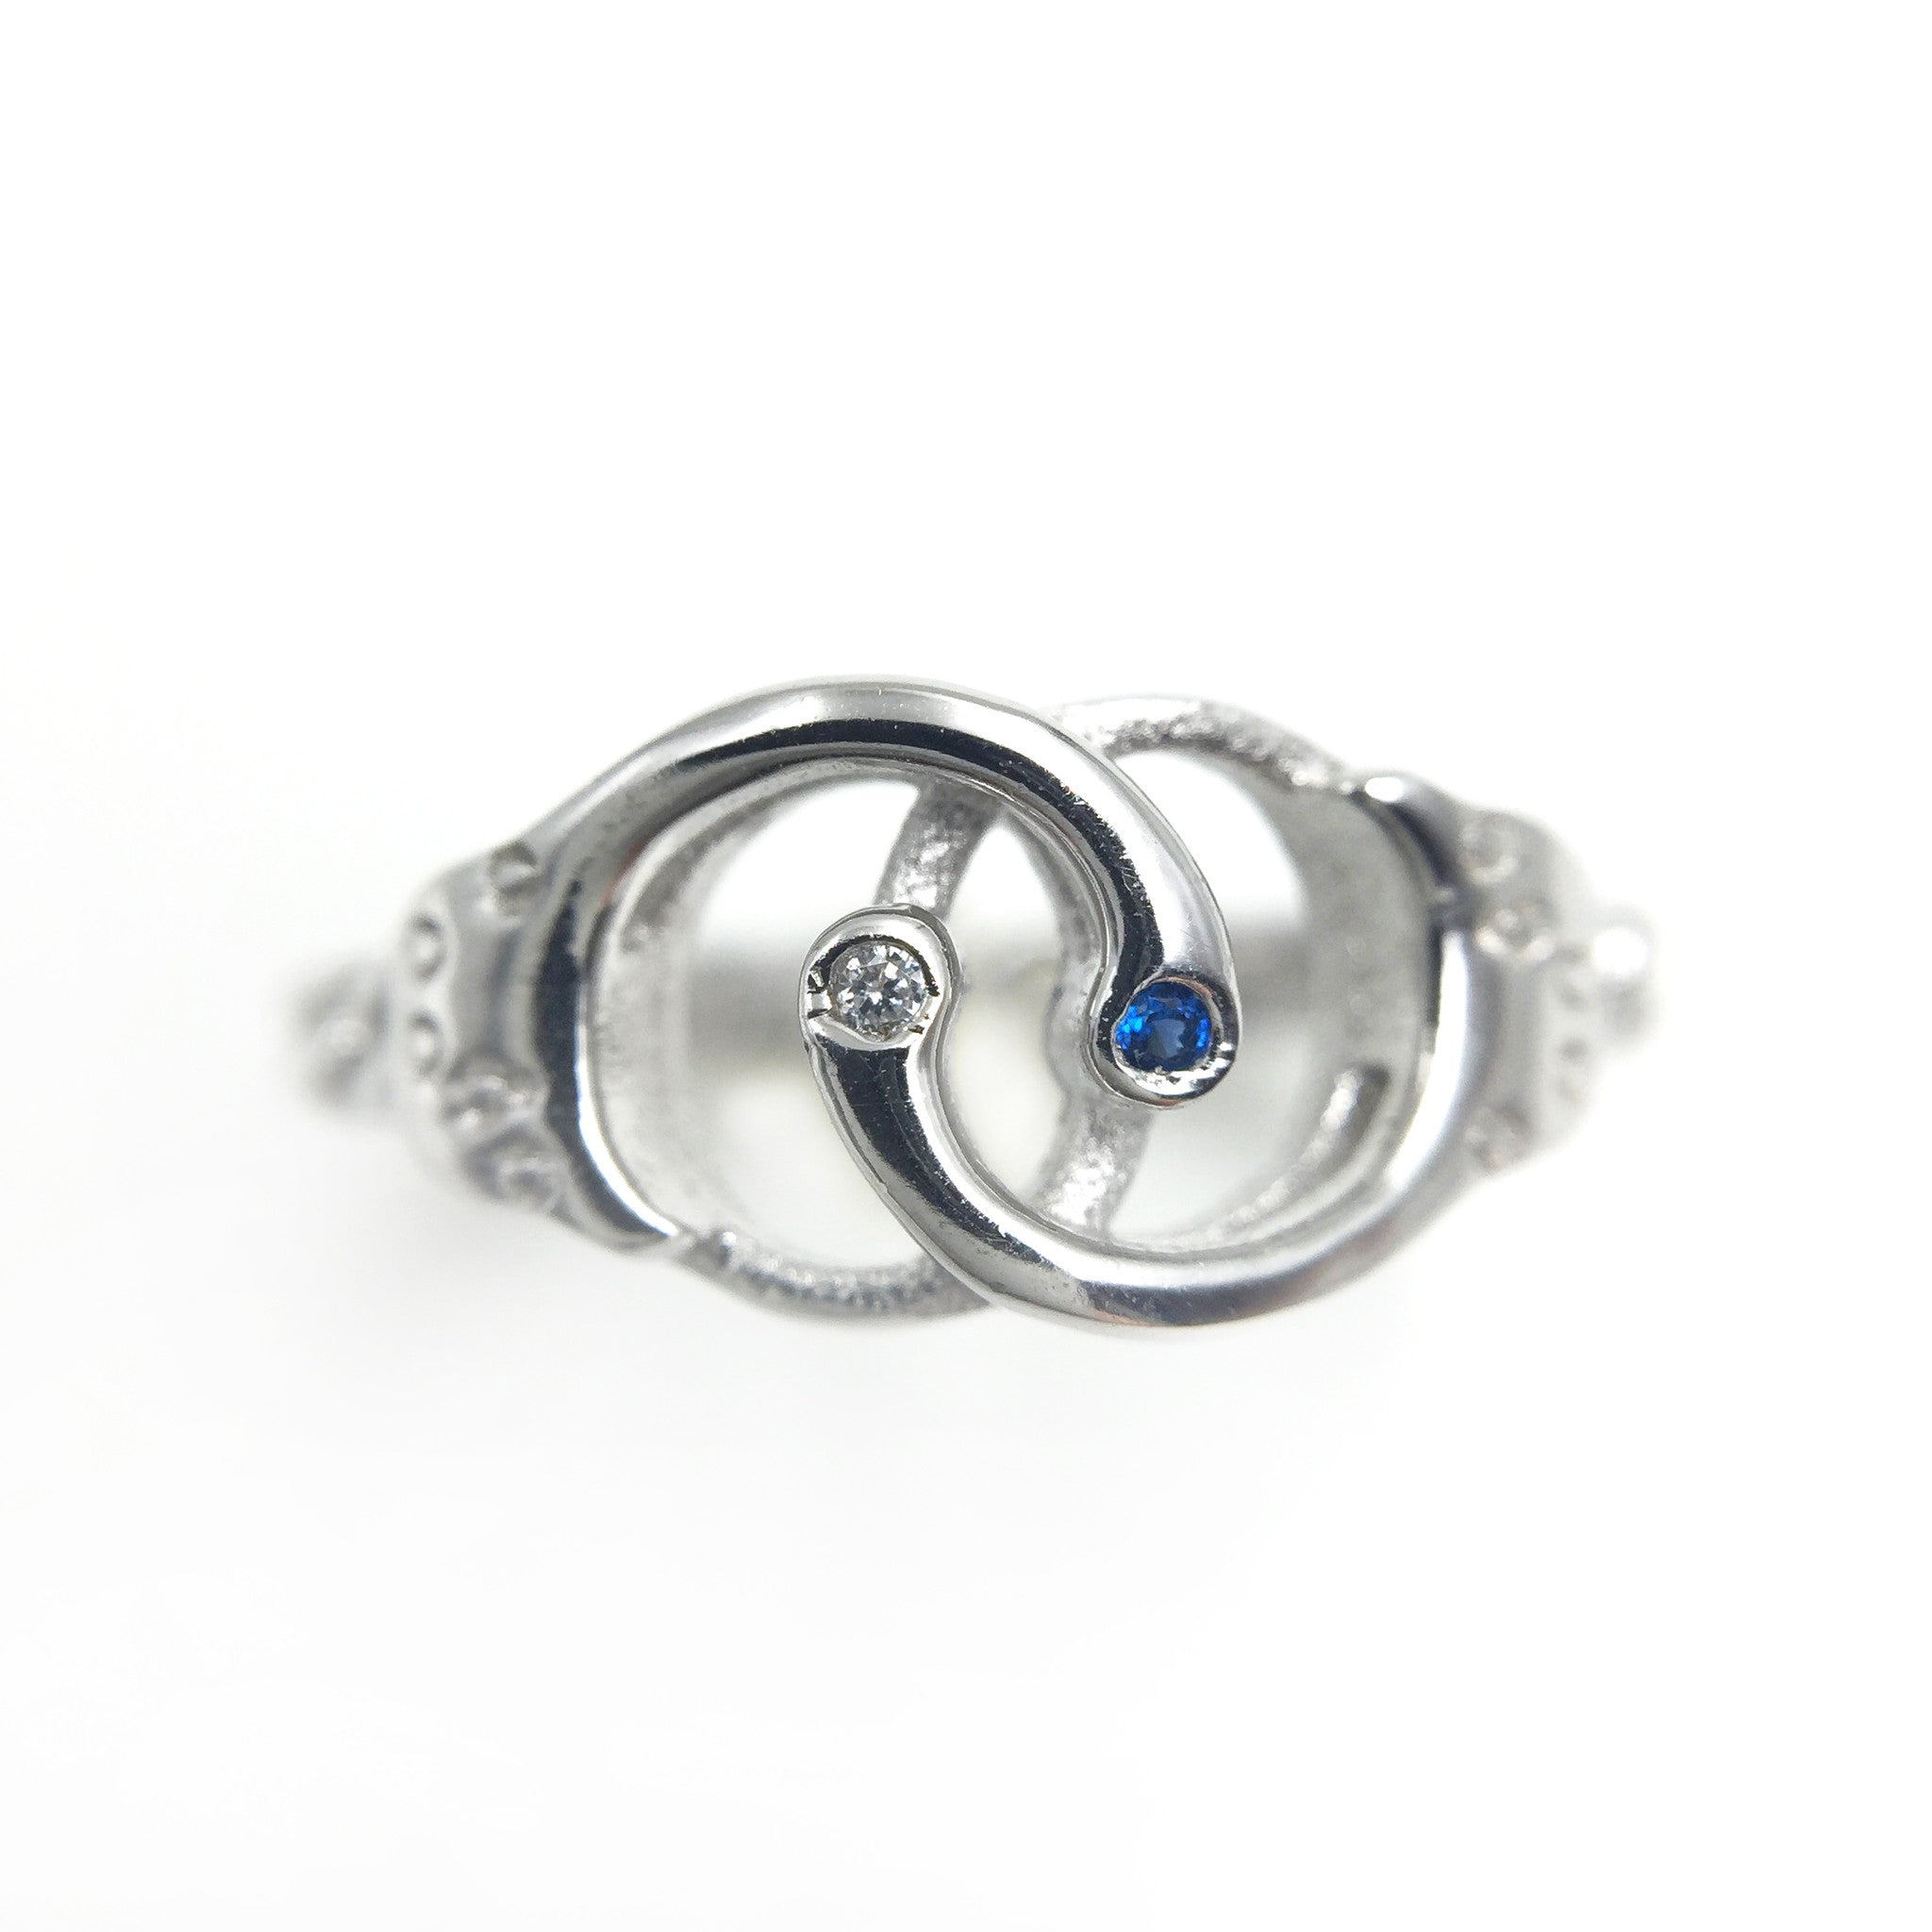 The Rhinestone Handcuff 925 Sterling Silver Ring - One Cool Gift  - 1